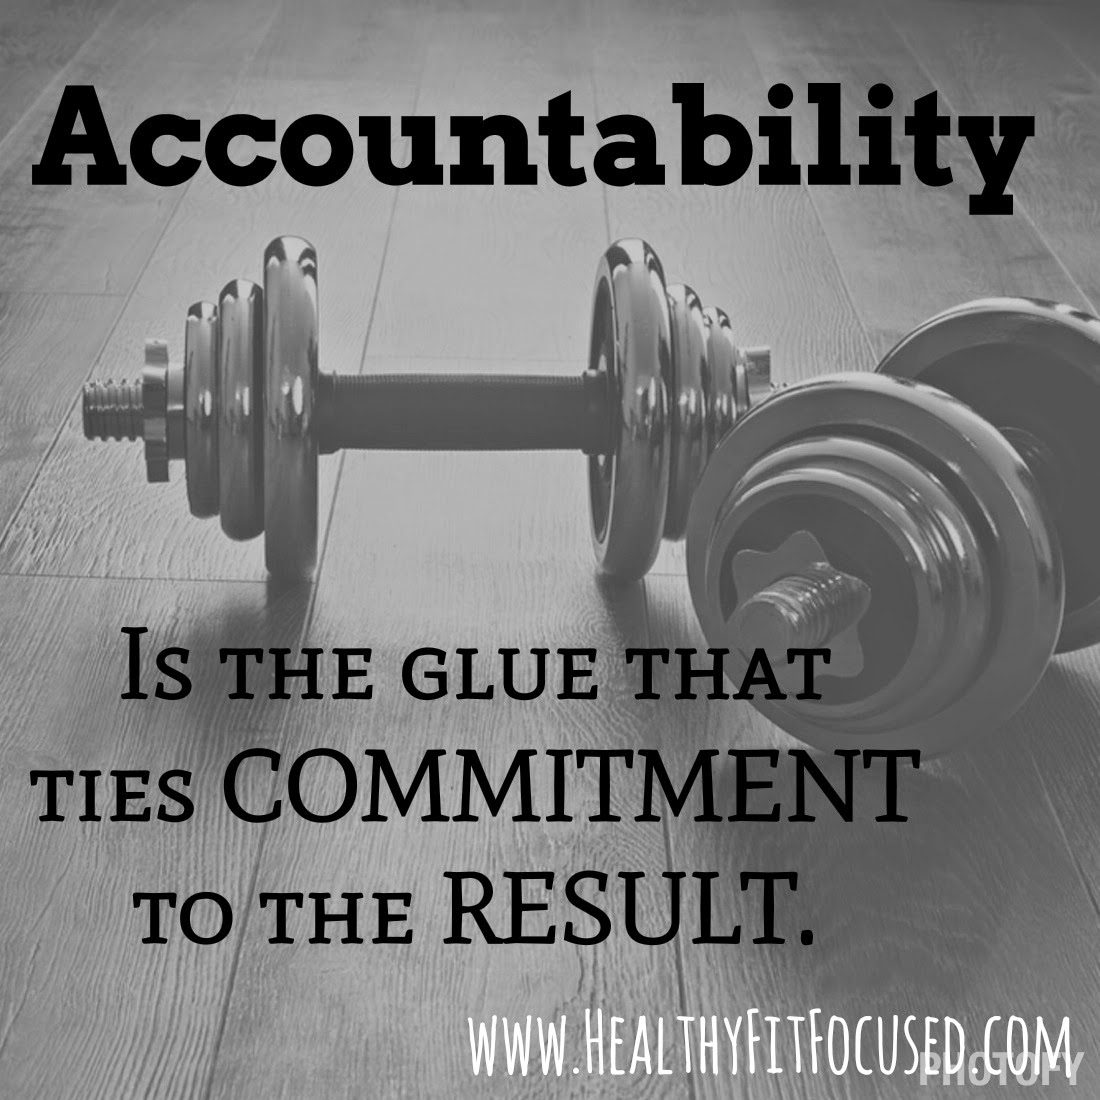 Accountability is the glue that times commitment to the result!, I'm ready to help you get the accountability you need to get the results you want.  www.HealthyFitFocused.com